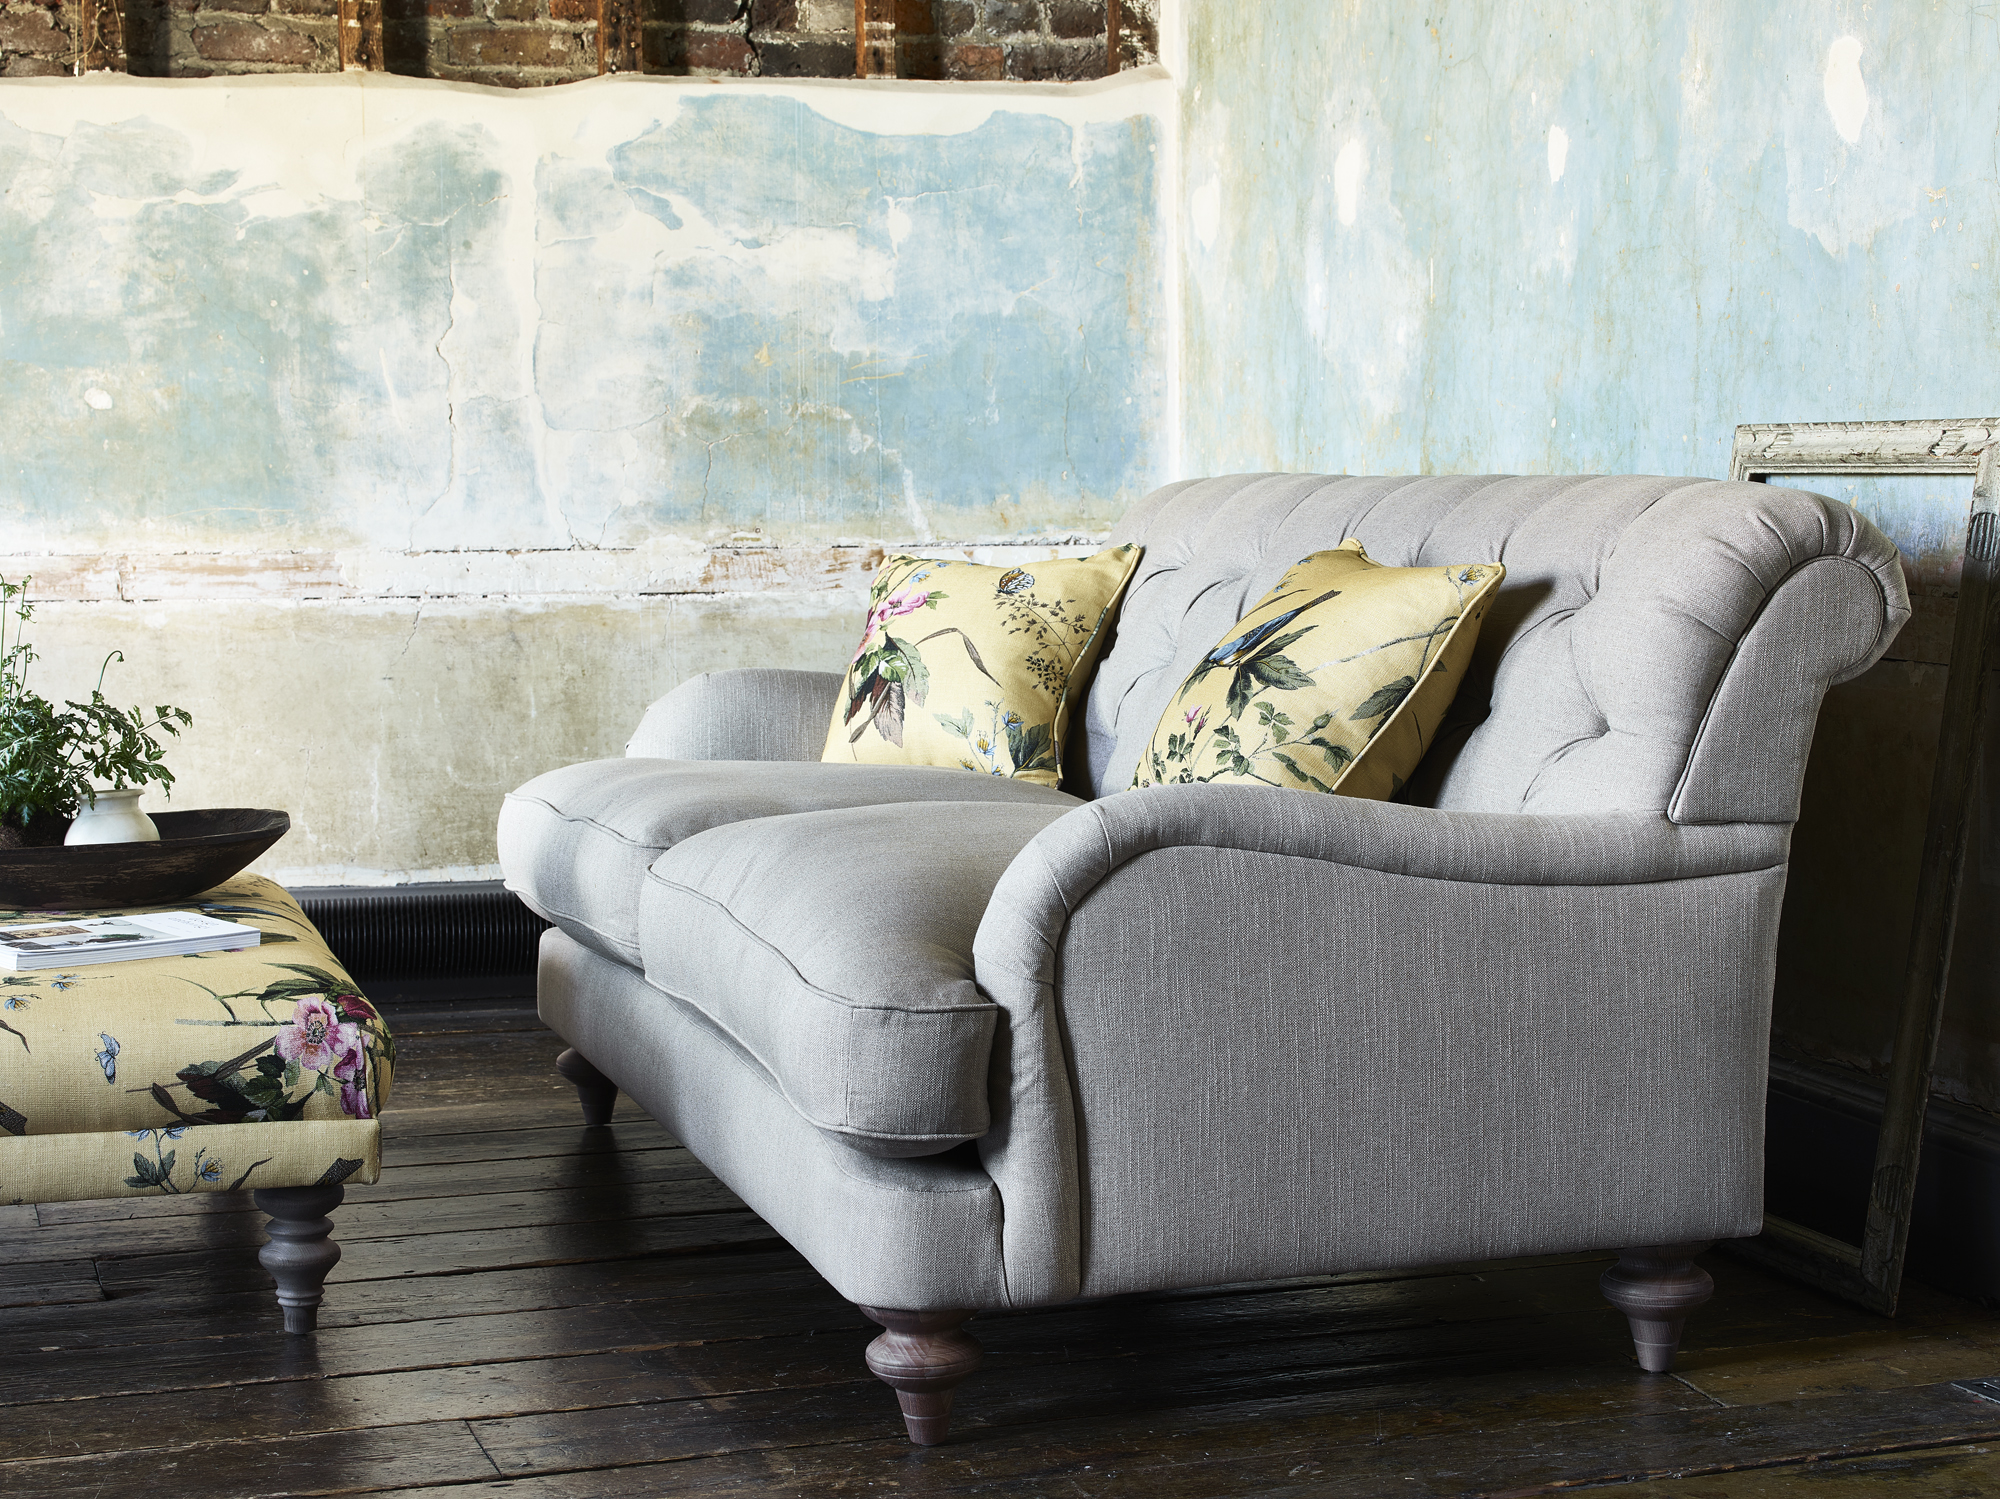 High Quality Coach House Is An Exclusive Collection Of Beautiful Timeless Upholstery  Using The Best Natural Leathers And Fabrics To Create The Perfect And Most  ...